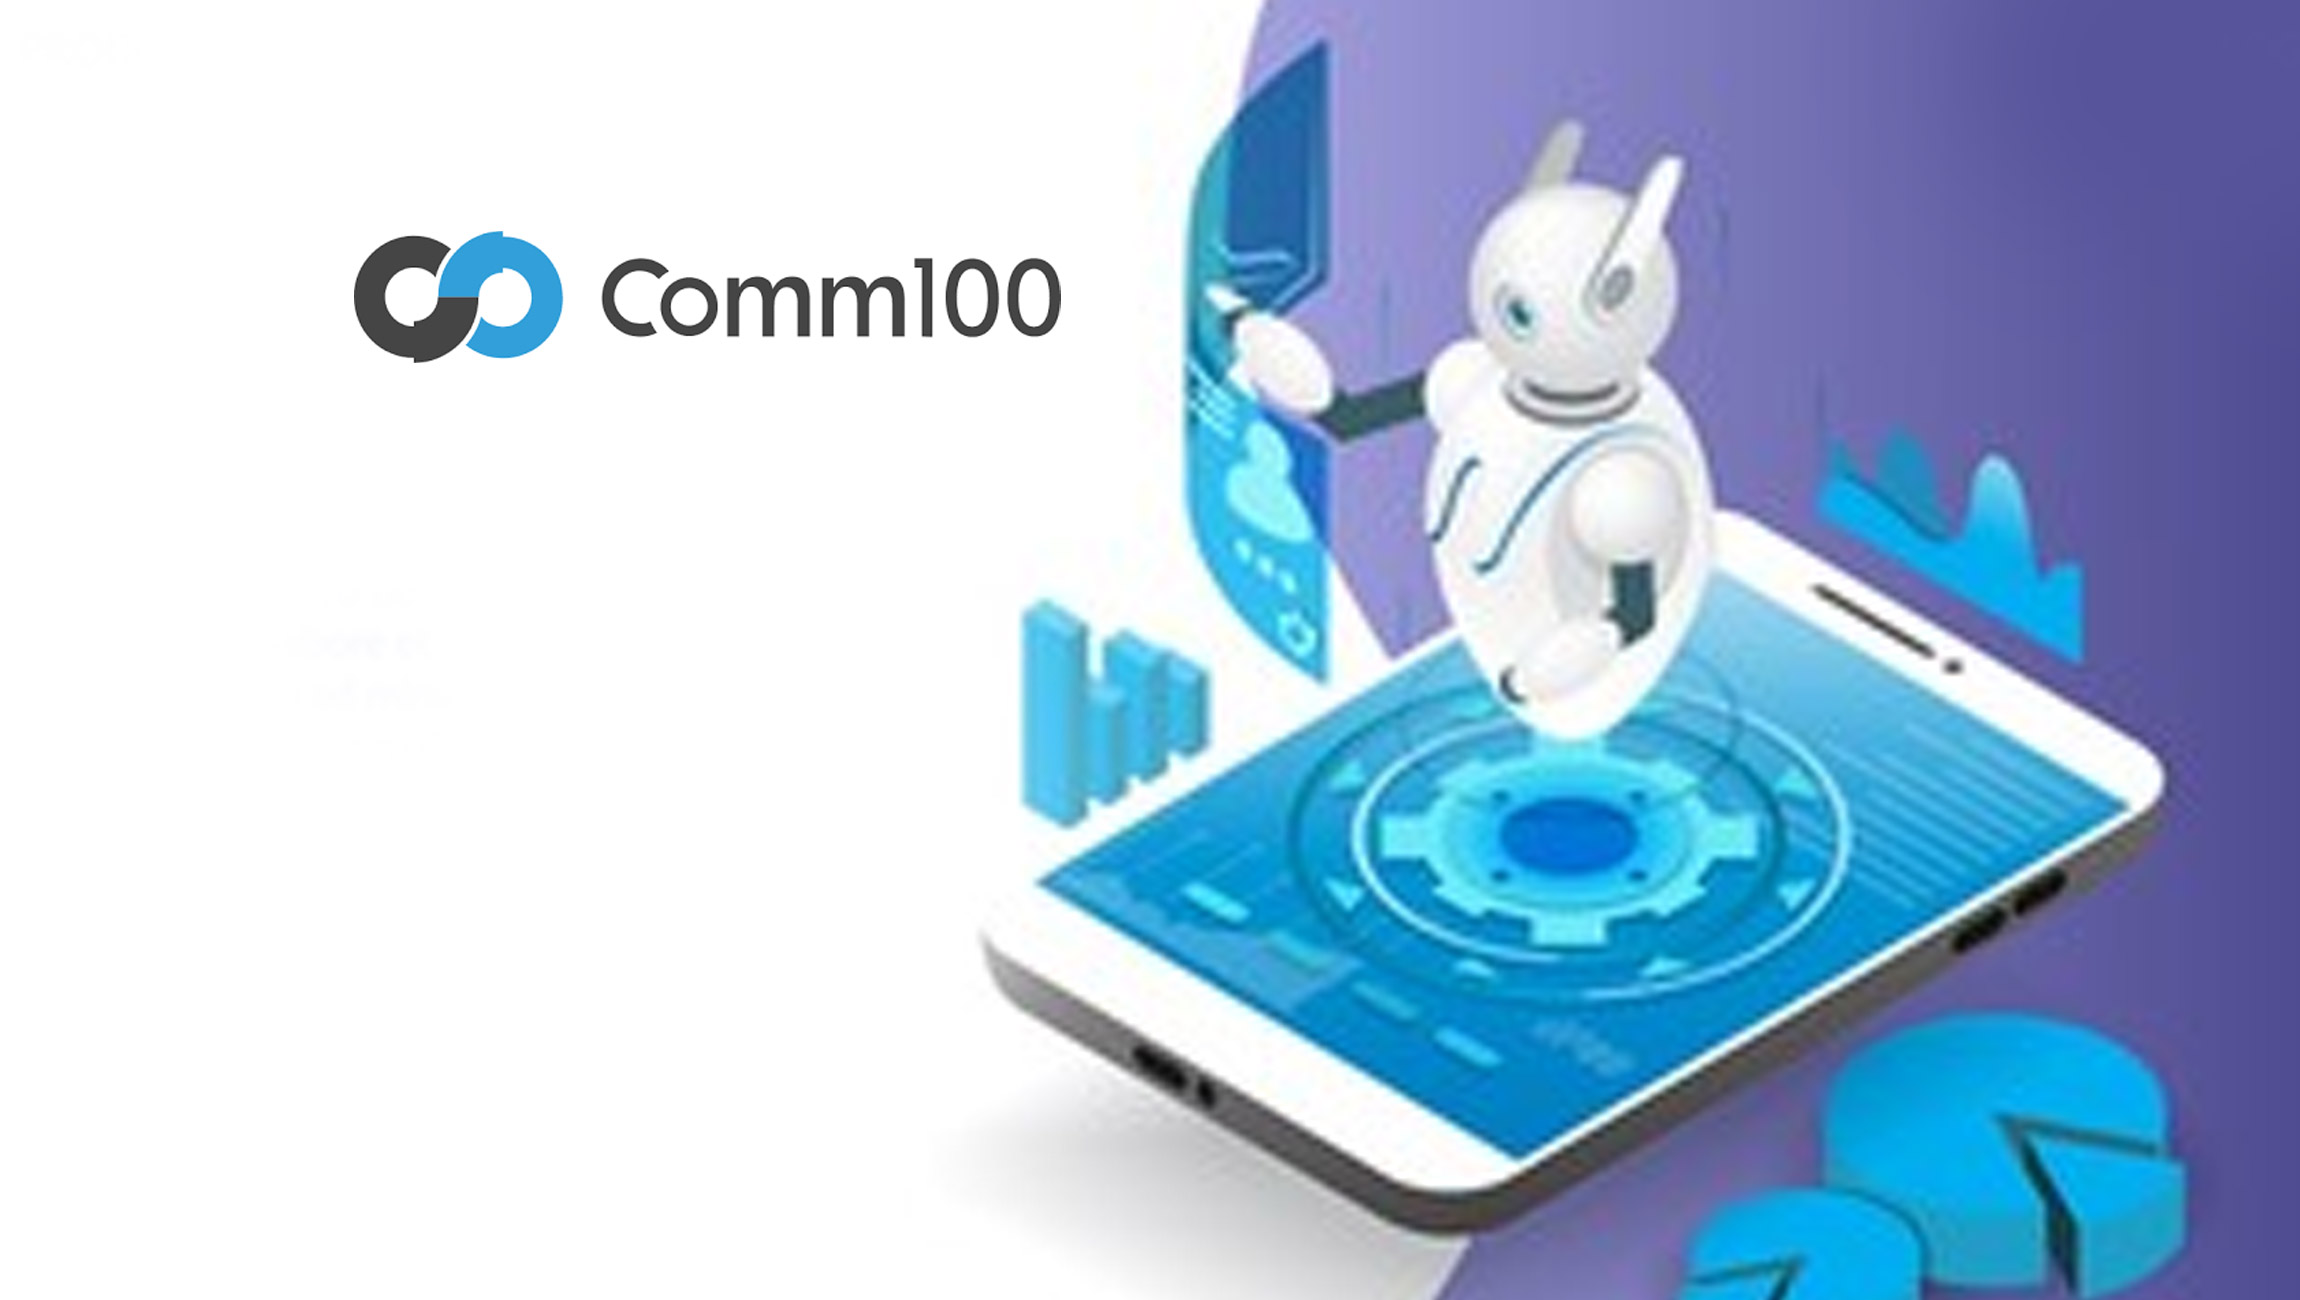 Comm100 Launches Task Bot, A Free Chatbot Tailored To Small Businesses